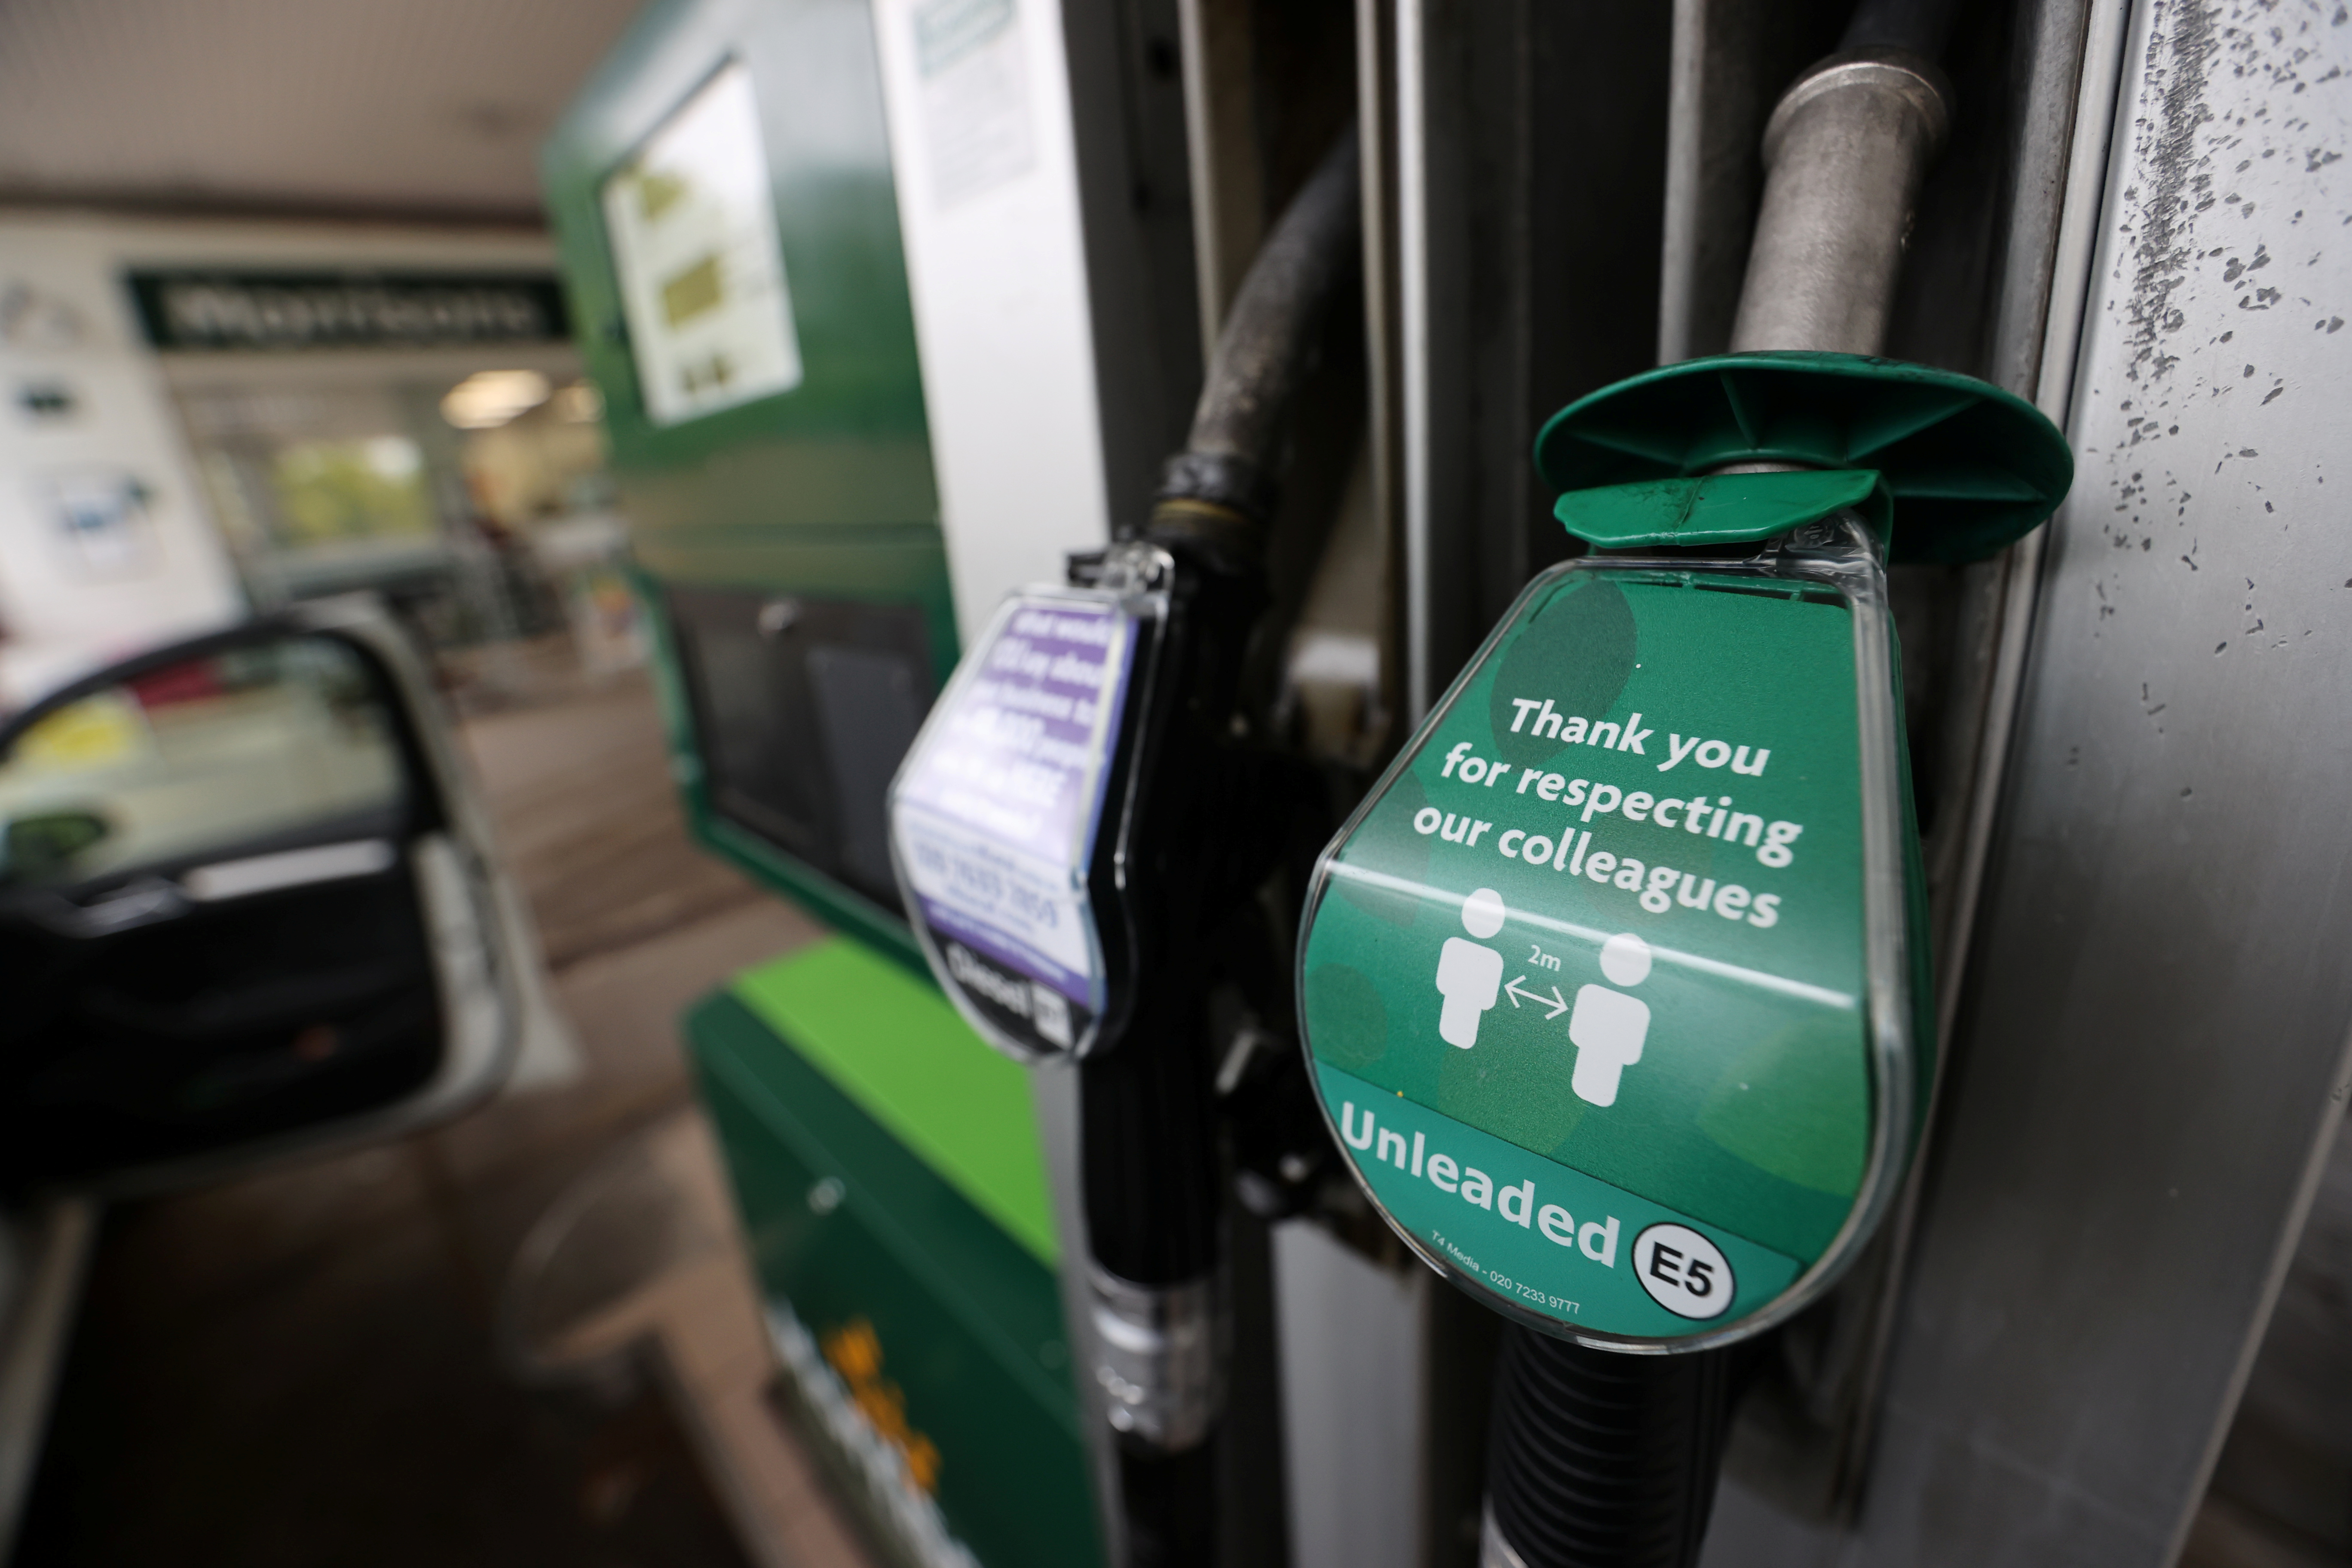 A notice telling people to stay 2 metres apart is seen at a petrol station, following the outbreak of the coronavirus disease (COVID-19), Stone, Britain, April 28, 2020. REUTERS/Carl Recine